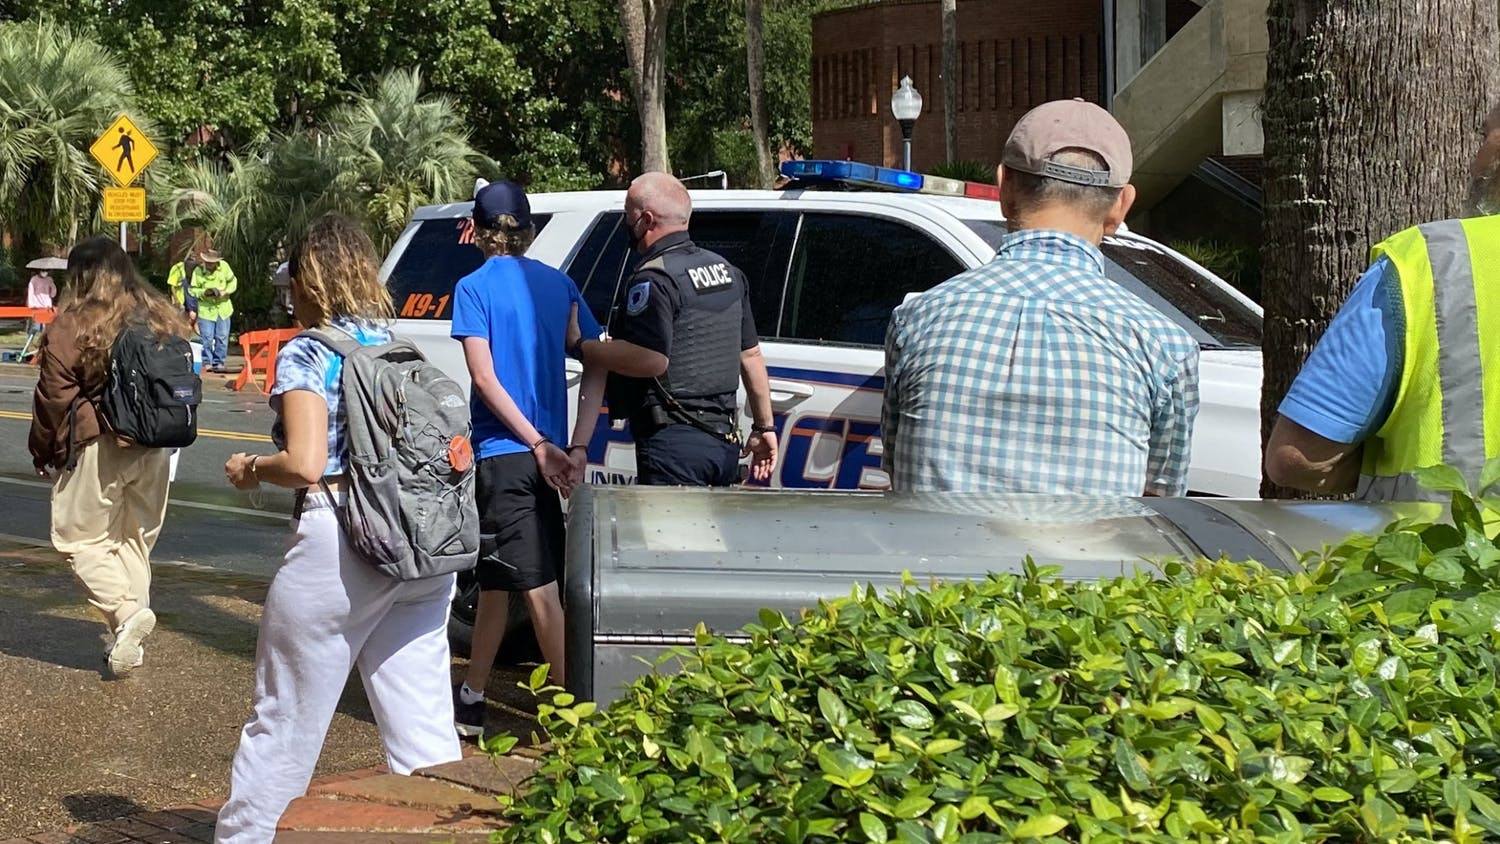 Joseph McDugald (middle), 18, UF freshman, is arrested by the University Police Department for refusing to leave an RTS bus in front of the Marston Science Library on Monday, Oct. 26, 2021. He was booked at the Alachua County Jail and released on Tuesday afternoon.